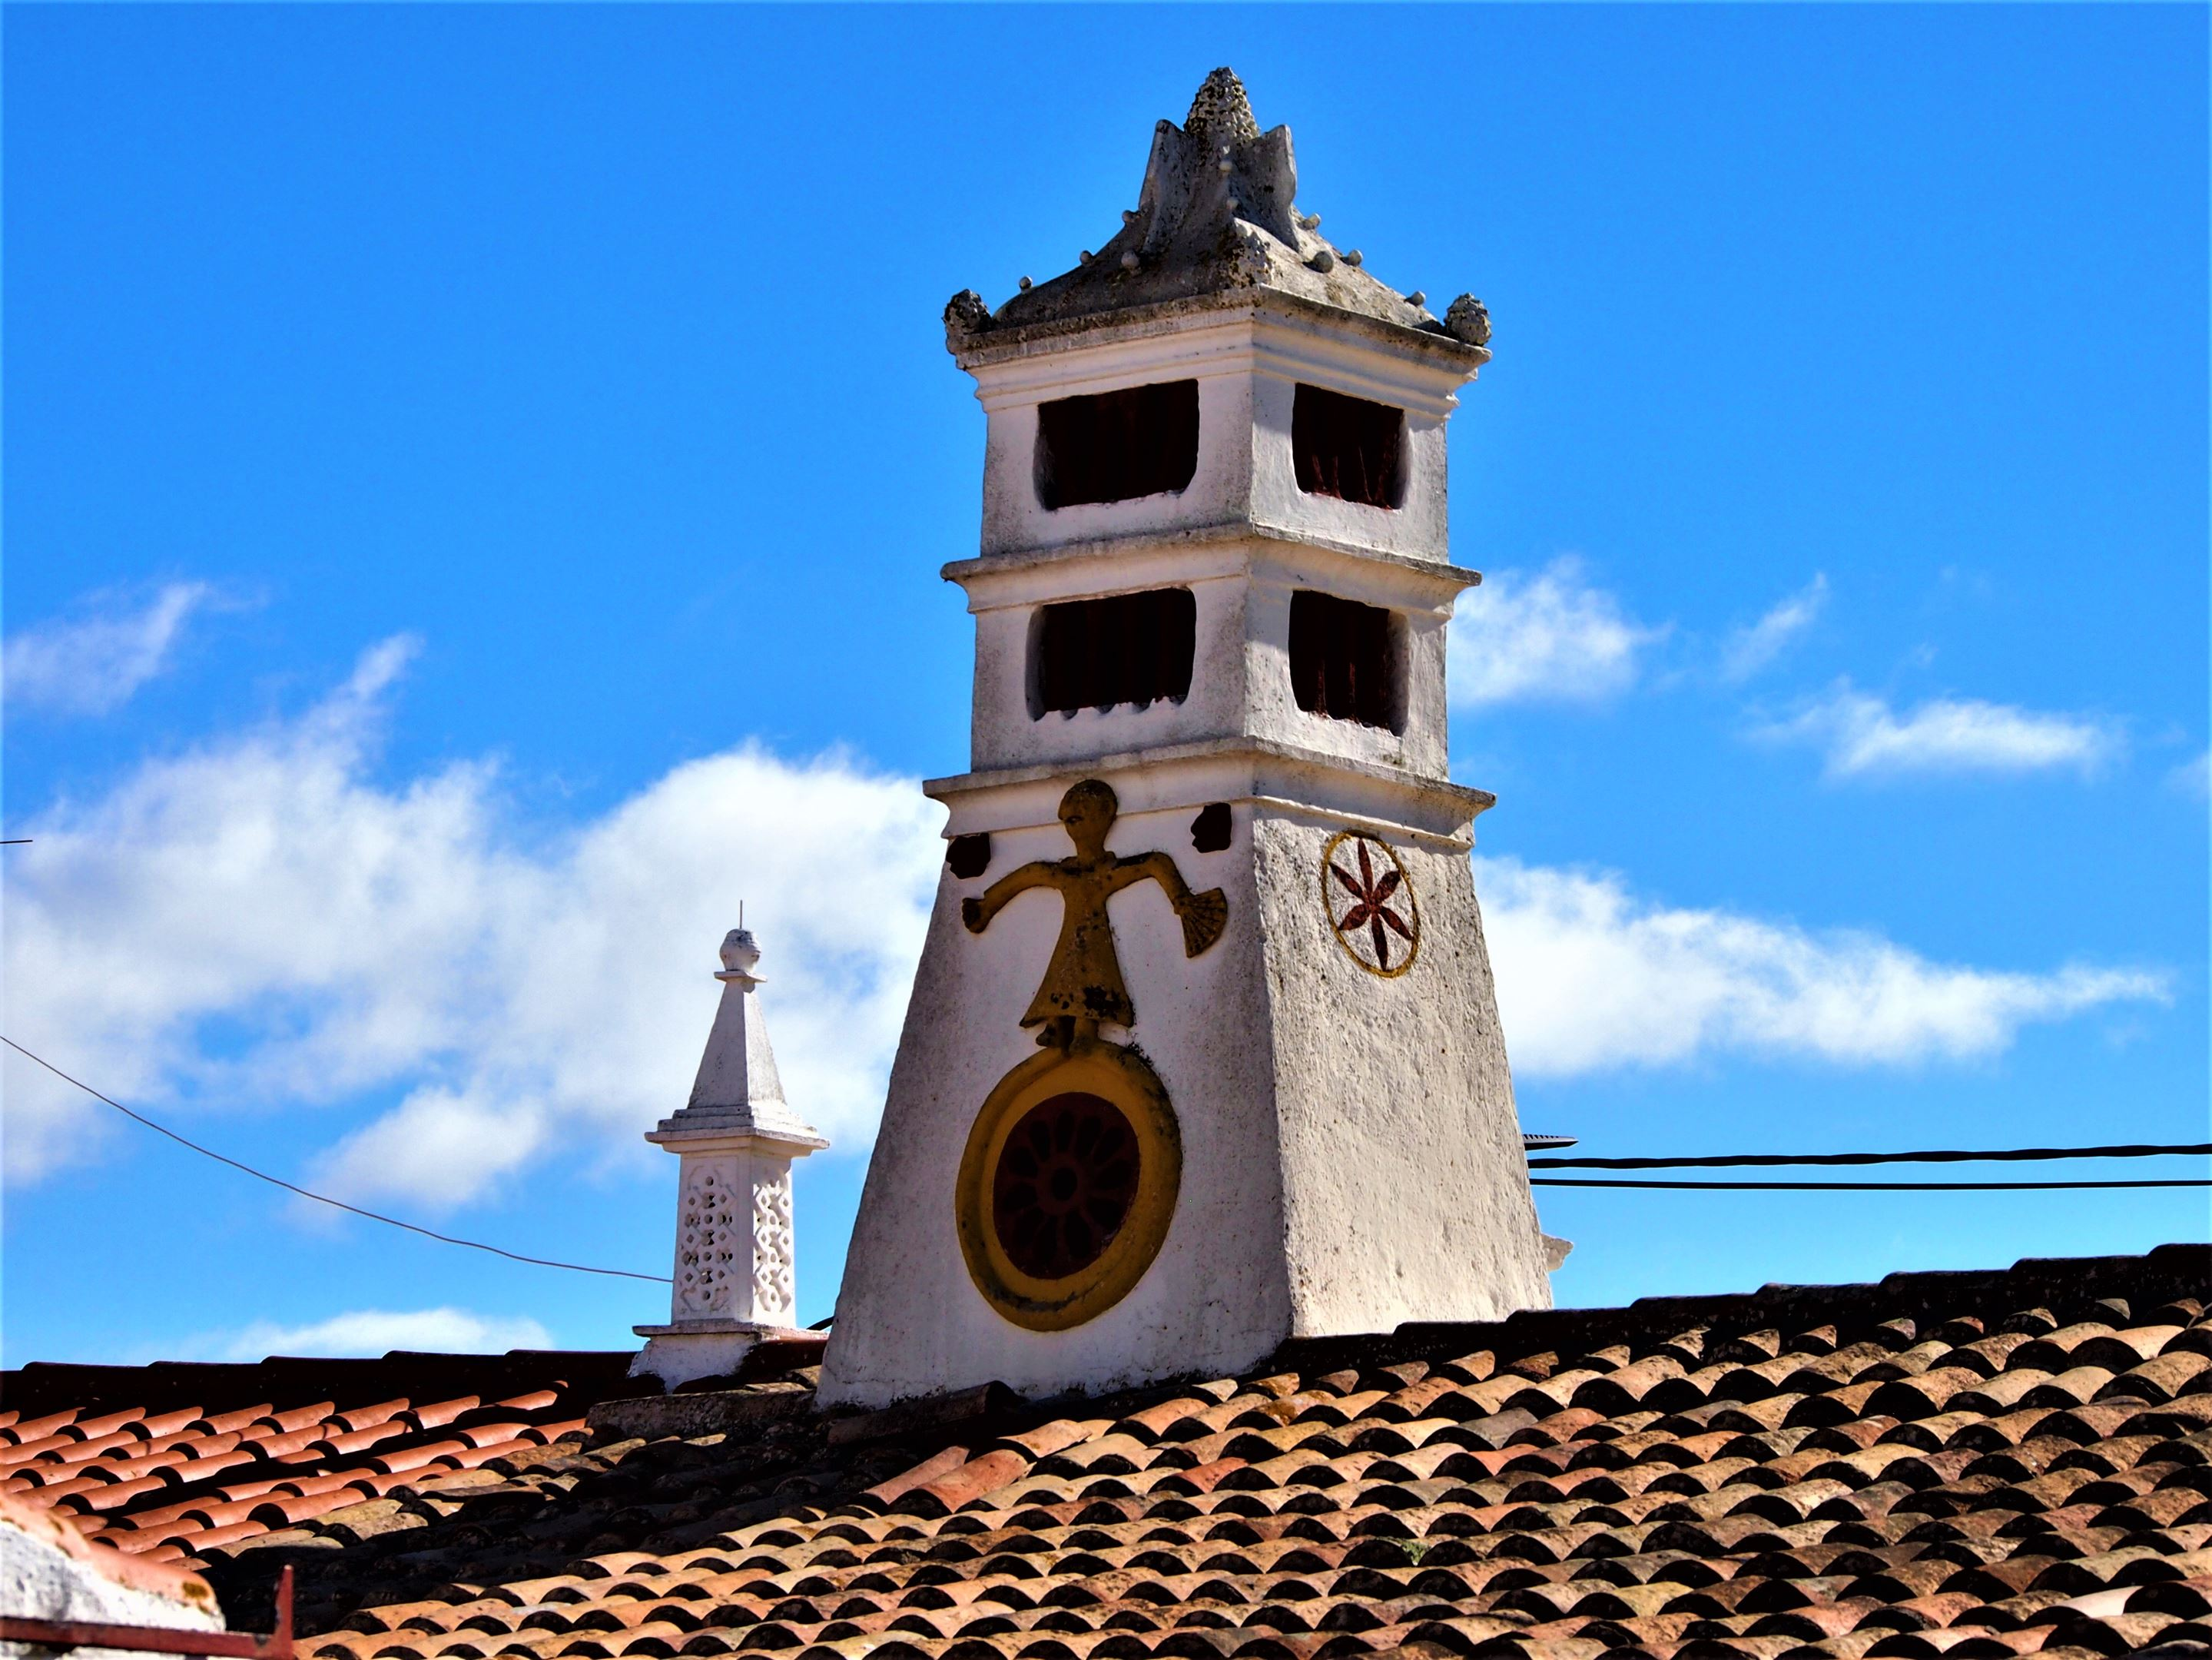 Chimenea ornamentada, Porches